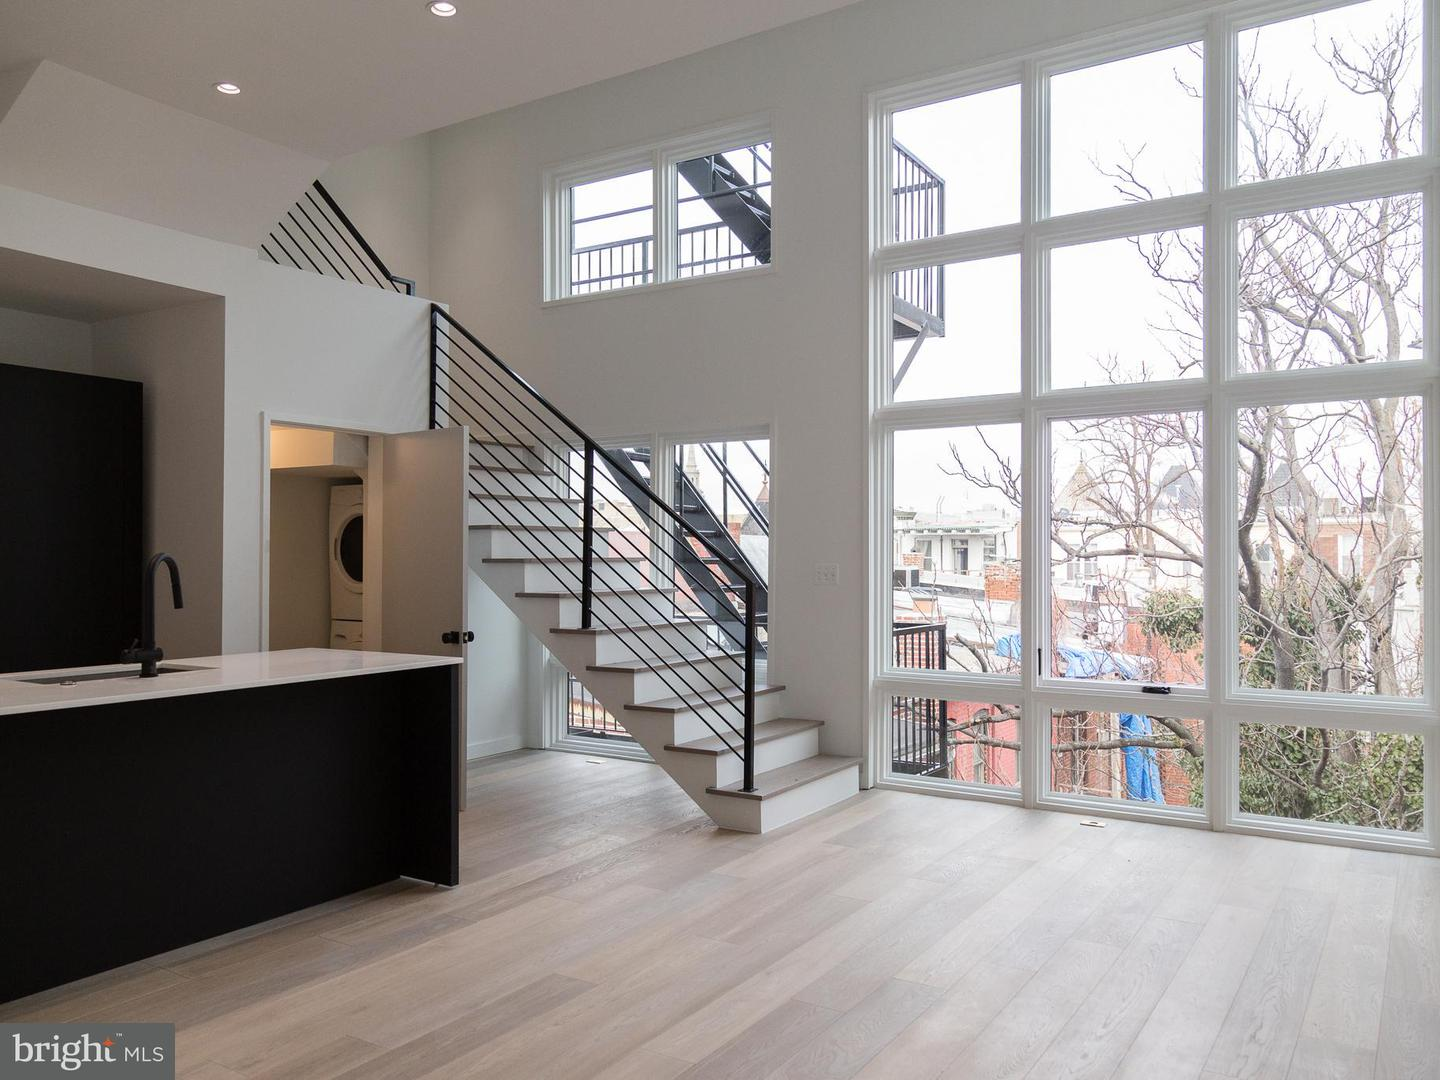 Other Residential for Rent at 1443 Euclid St NW #8 Washington, District Of Columbia 20009 United States